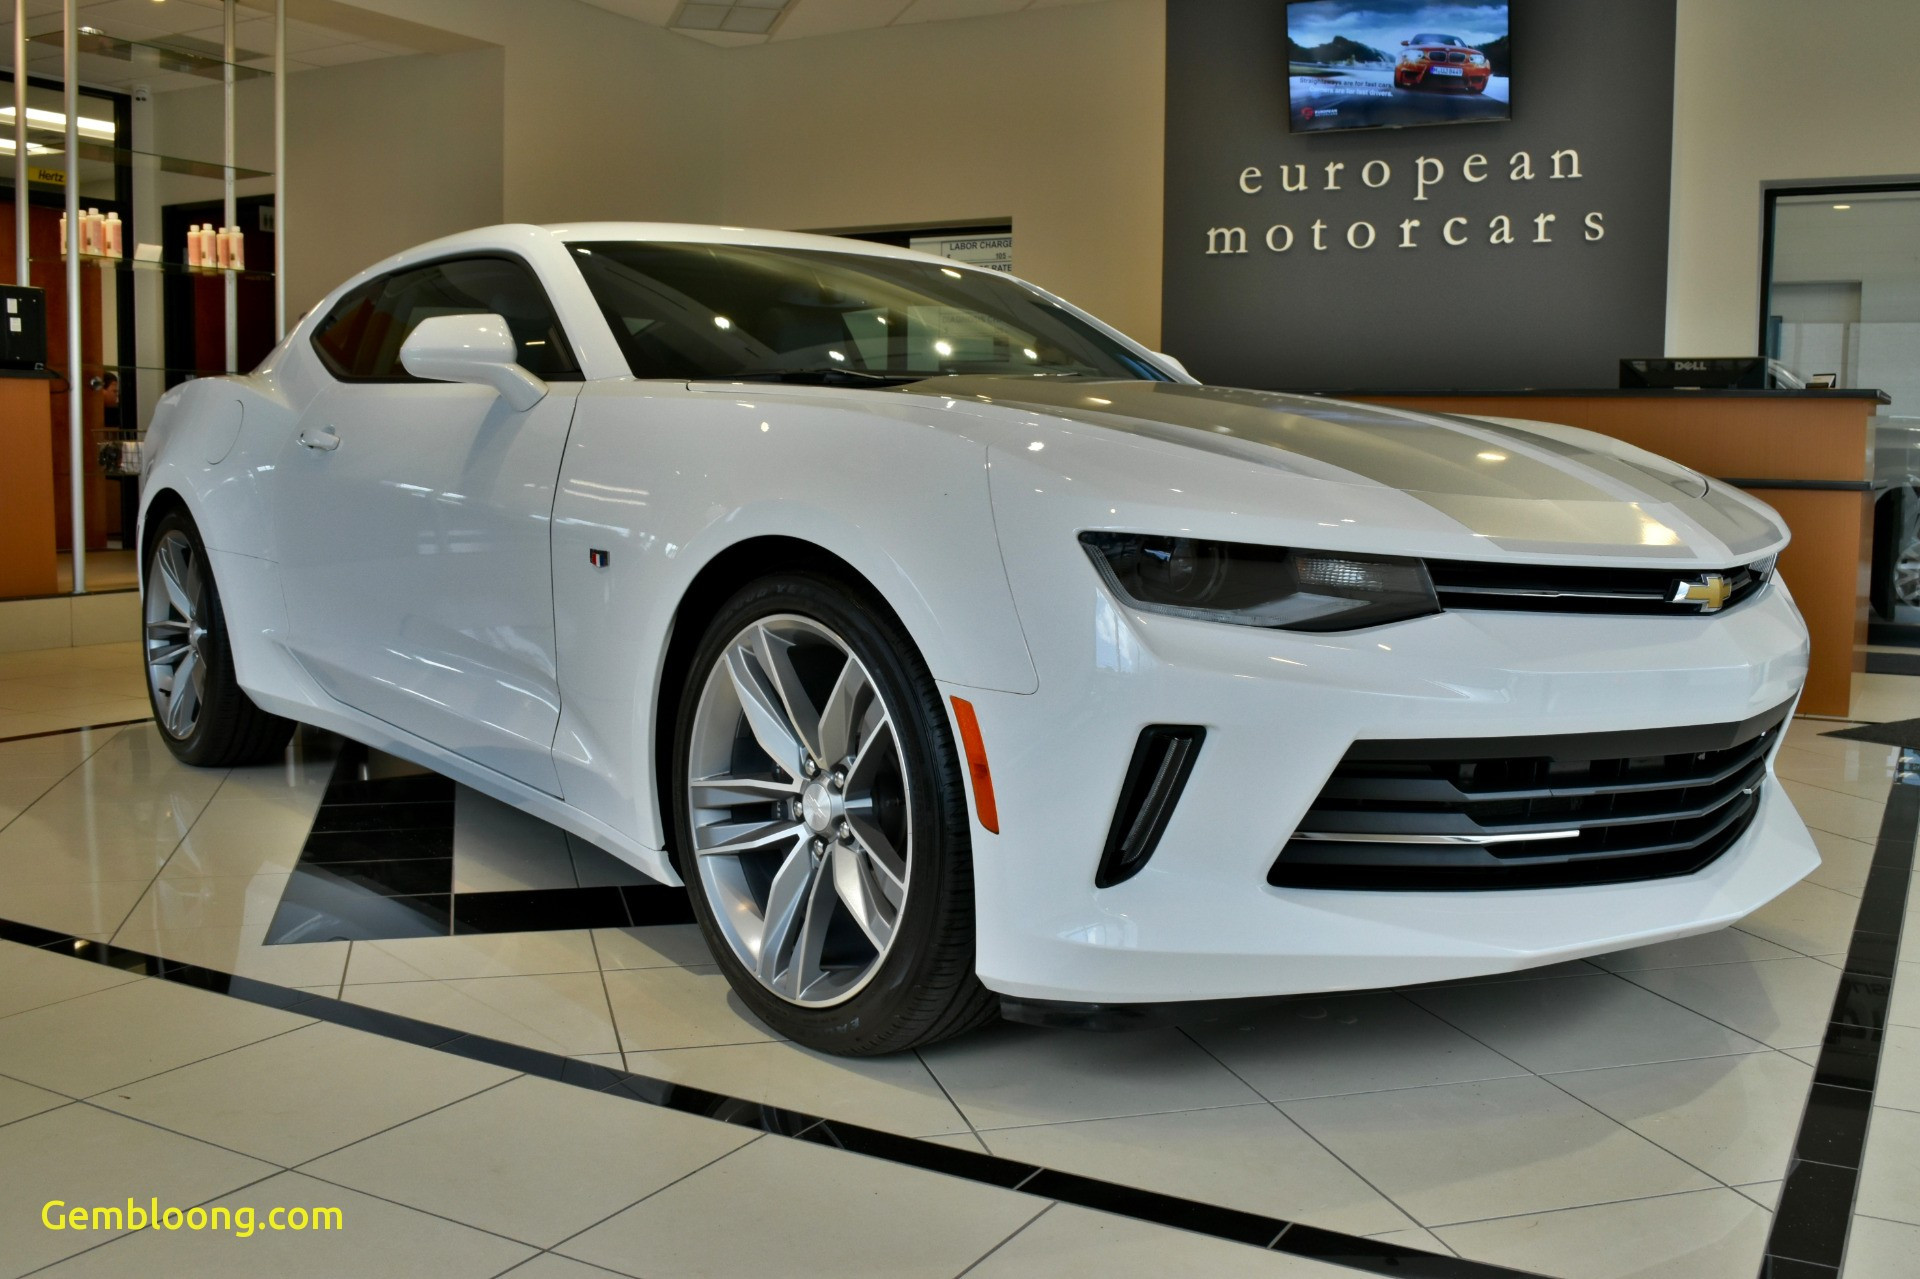 Cars for Sale Near Me Under 15 000 Unique Used Car Dealers Ct Elegant Used Cars Under $15 000 for Sale